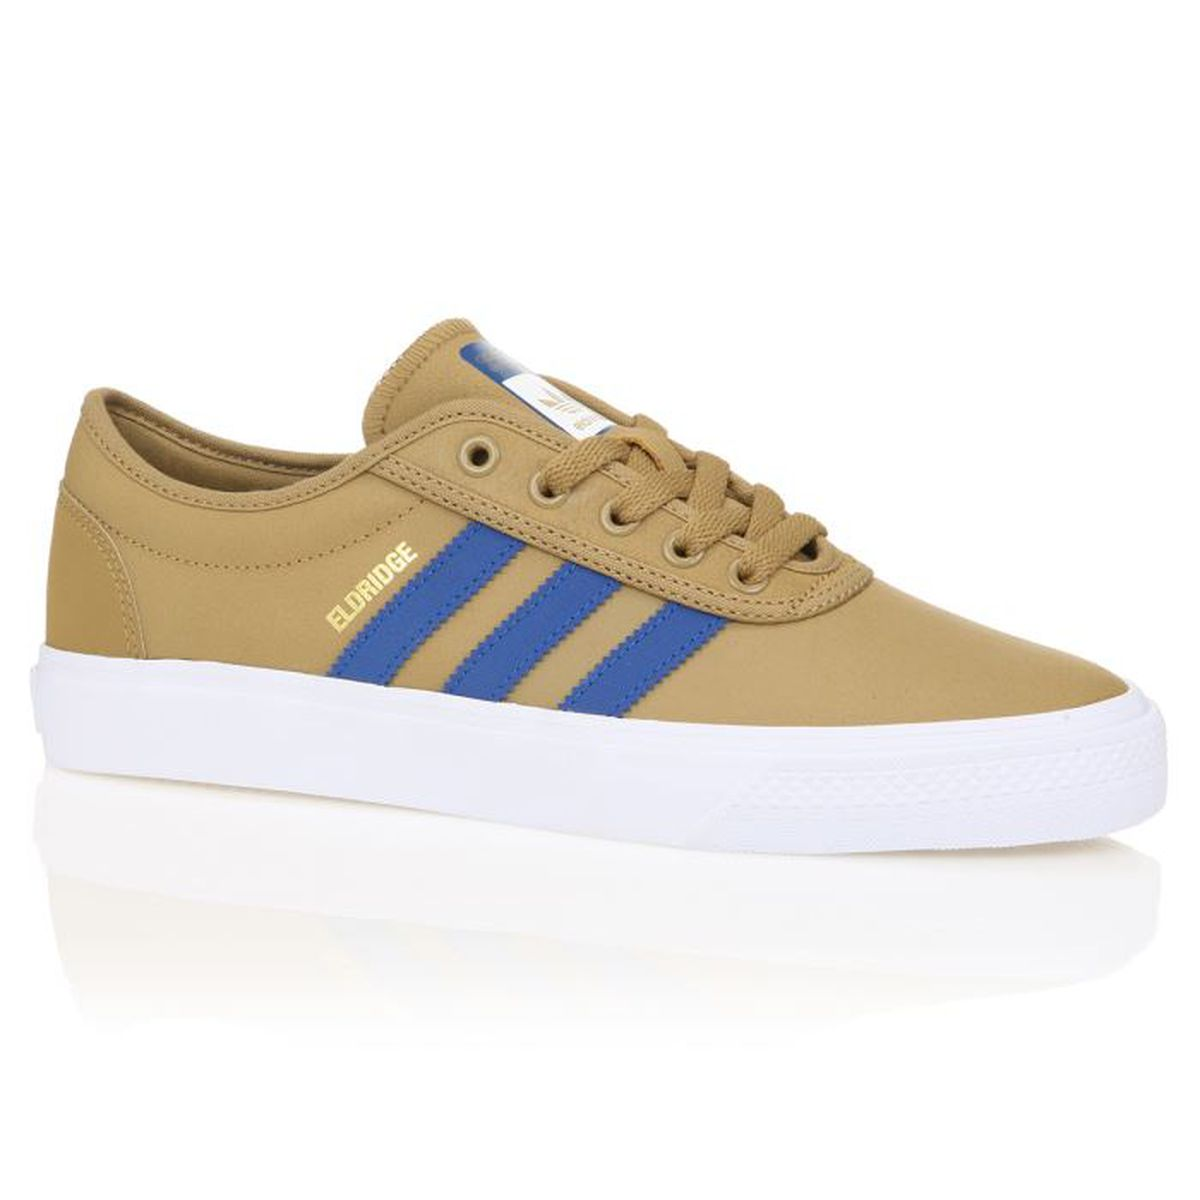 low priced 8ee8a c2f6f BASKET ADIDAS ORIGINALS Baskets Adi Ease Homme